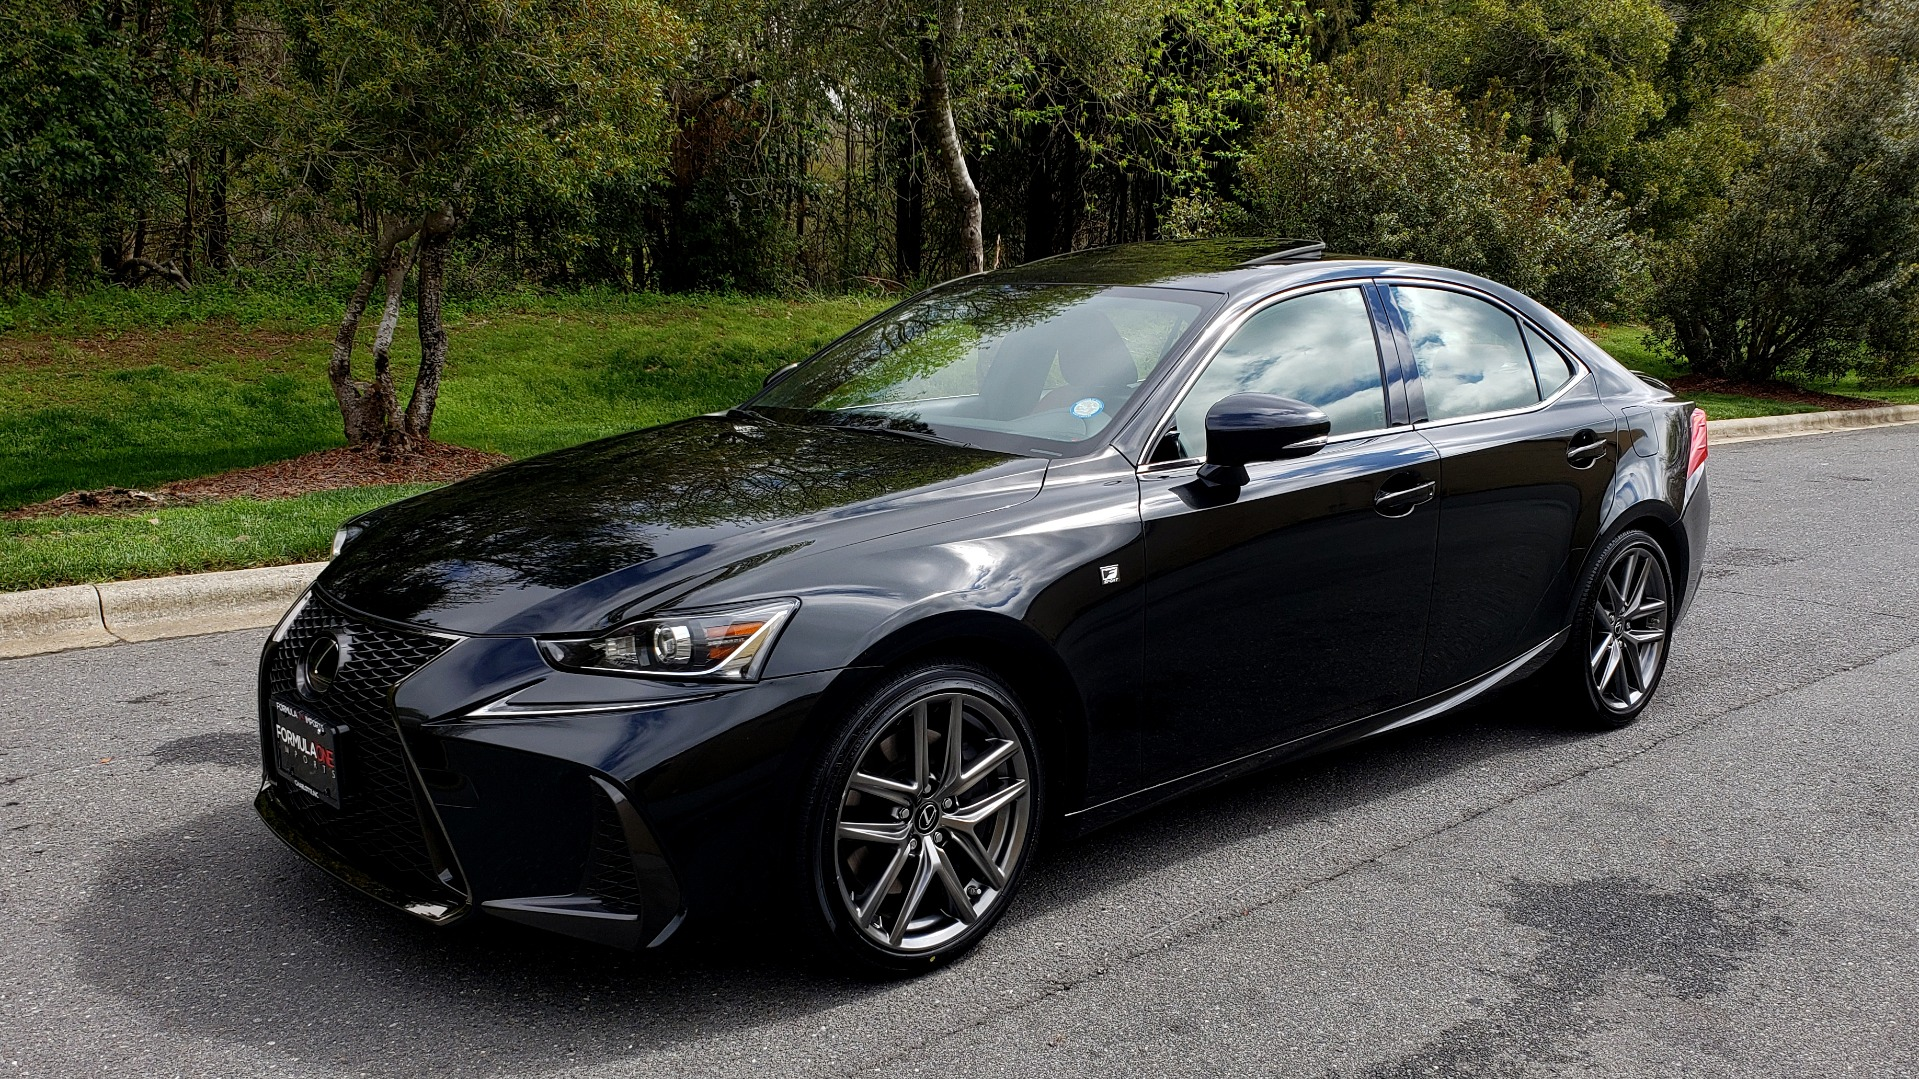 Used 2017 Lexus IS 300 F SPORT AWD / NAV / SUNROOF / REARVIEW / VENT SEATS / BSM for sale Sold at Formula Imports in Charlotte NC 28227 1